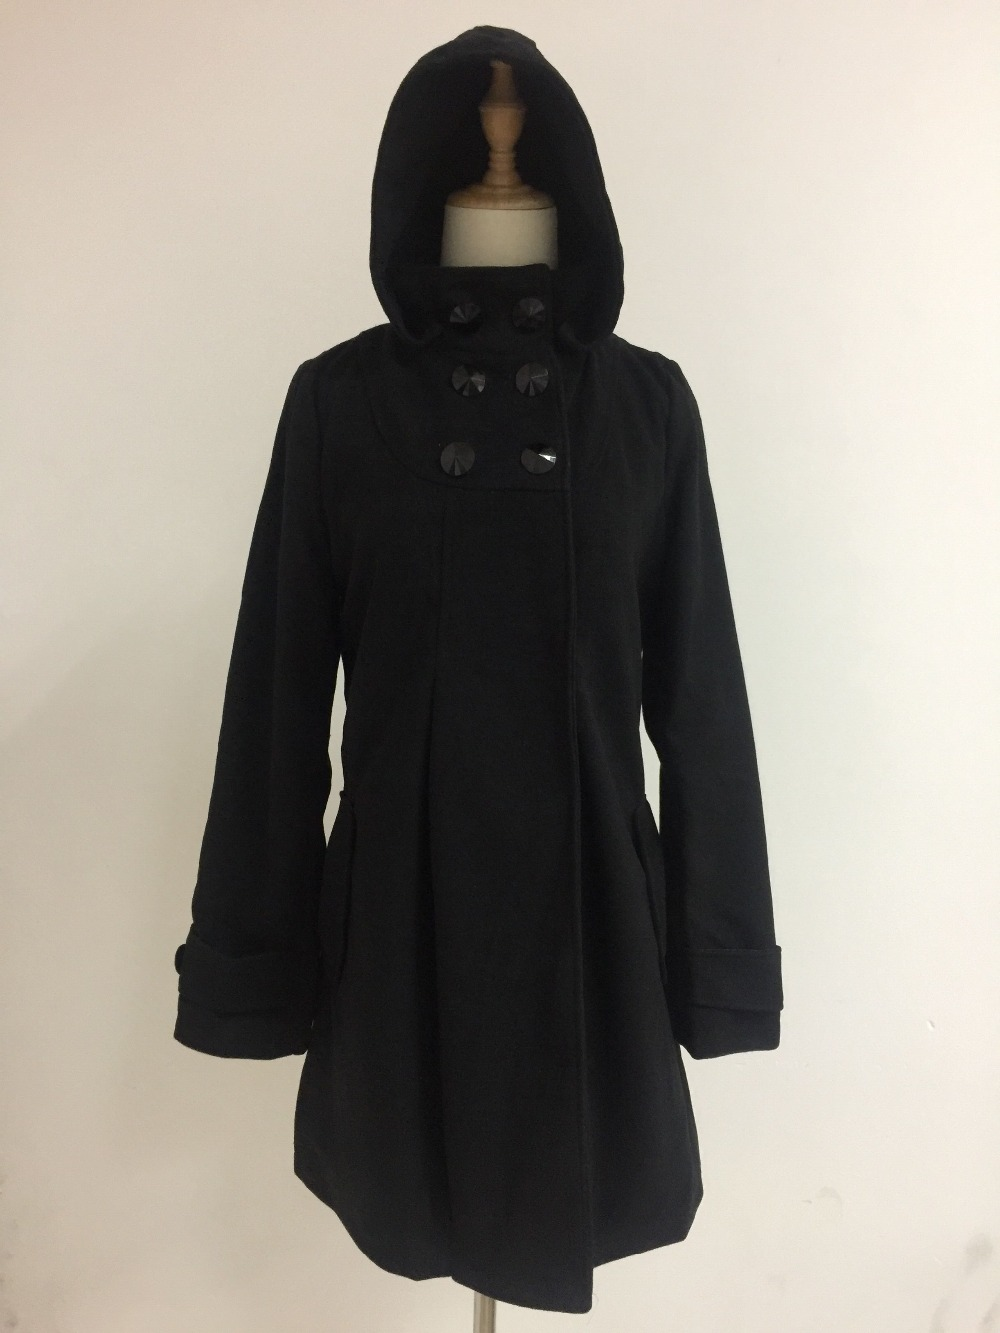 Elegant Coat for Women Pockets Casual Hooded Wool Coat and Jacket Solid Autumn Winter Women Clothes 2018 Plus Size 3XL 4XL 12